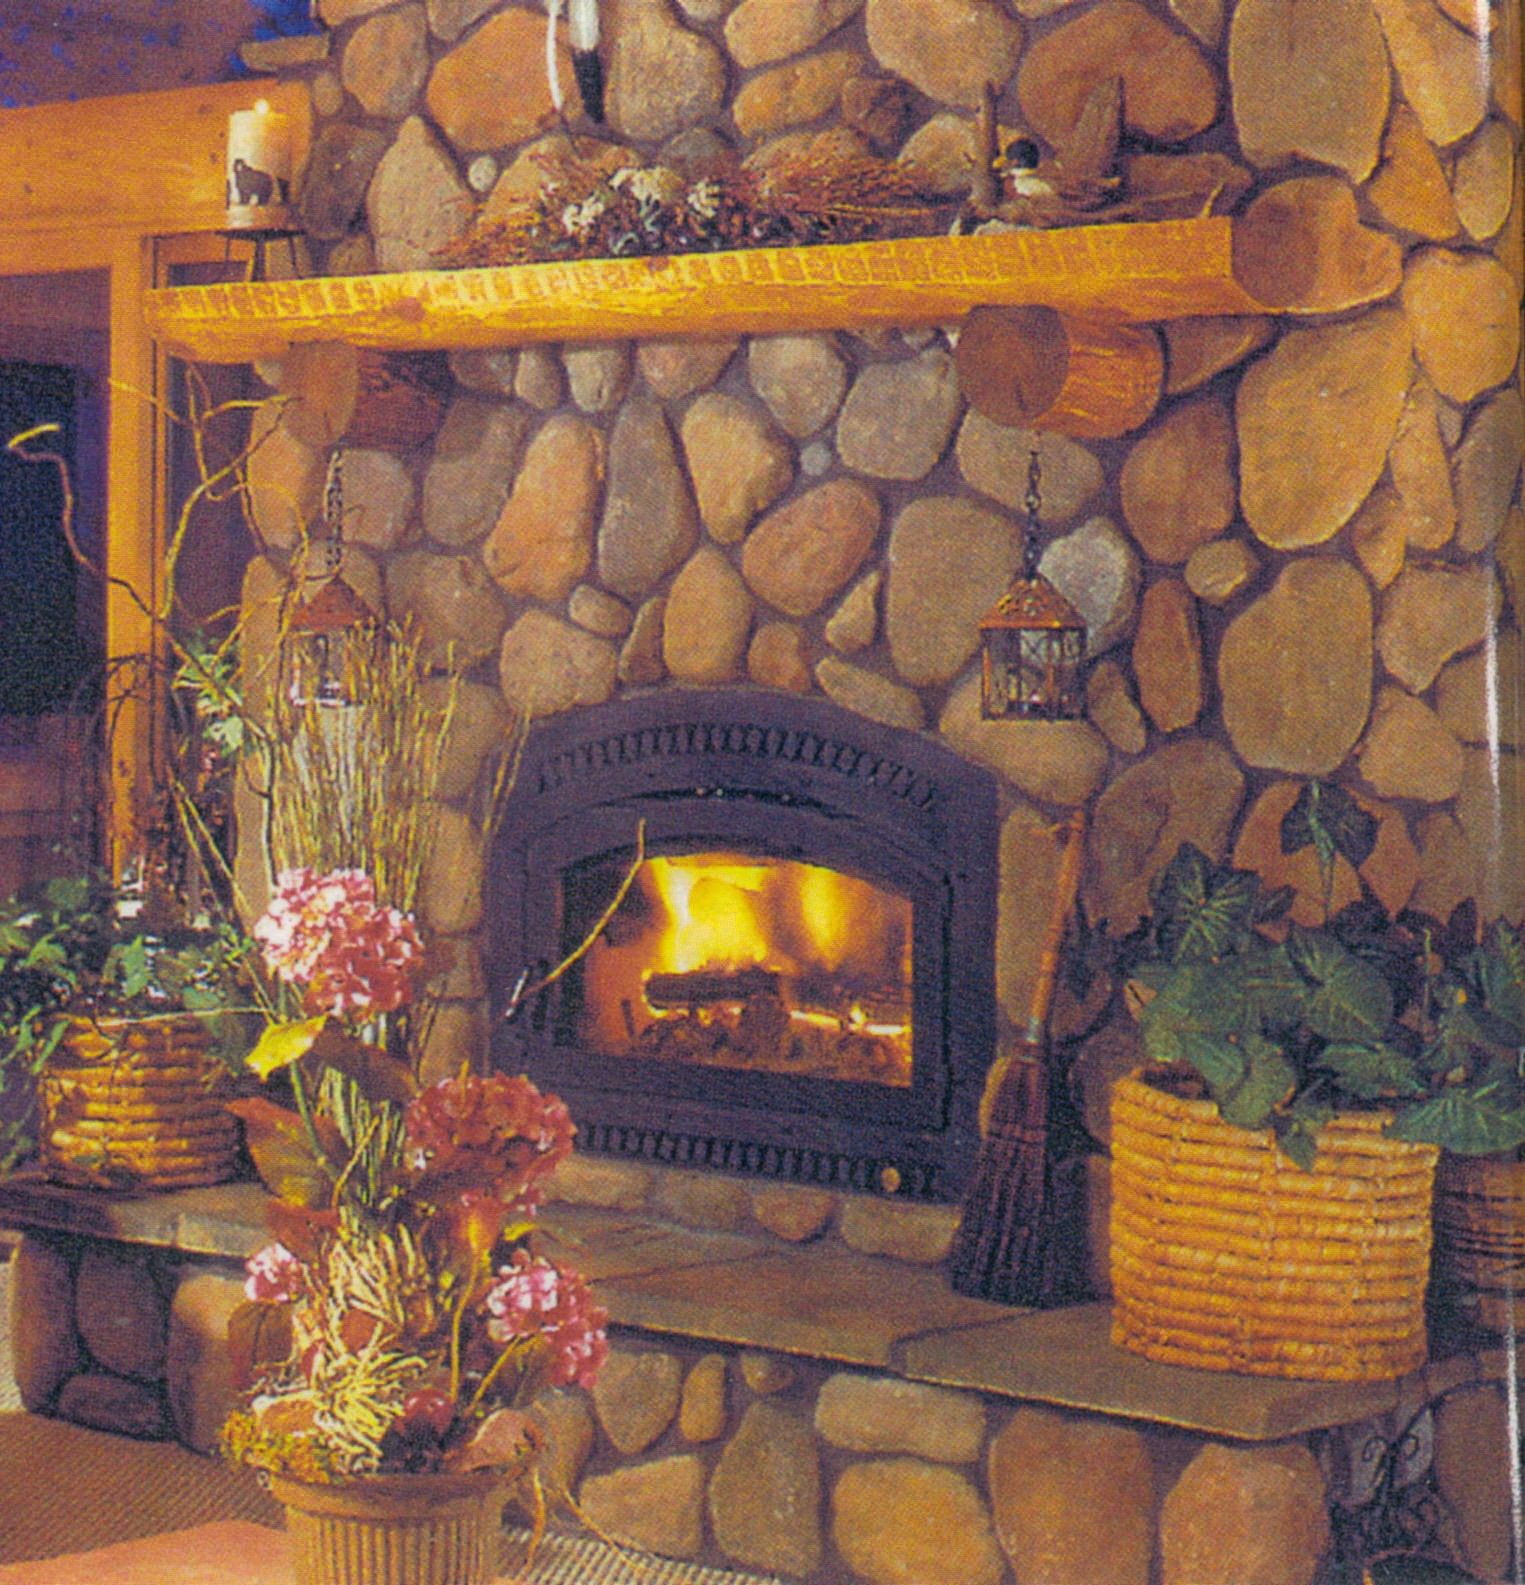 River rock fireplace pictures - River Rock Fireplaces Fireplace Constructed Of Brown Brick Rock With A Wood Mantle